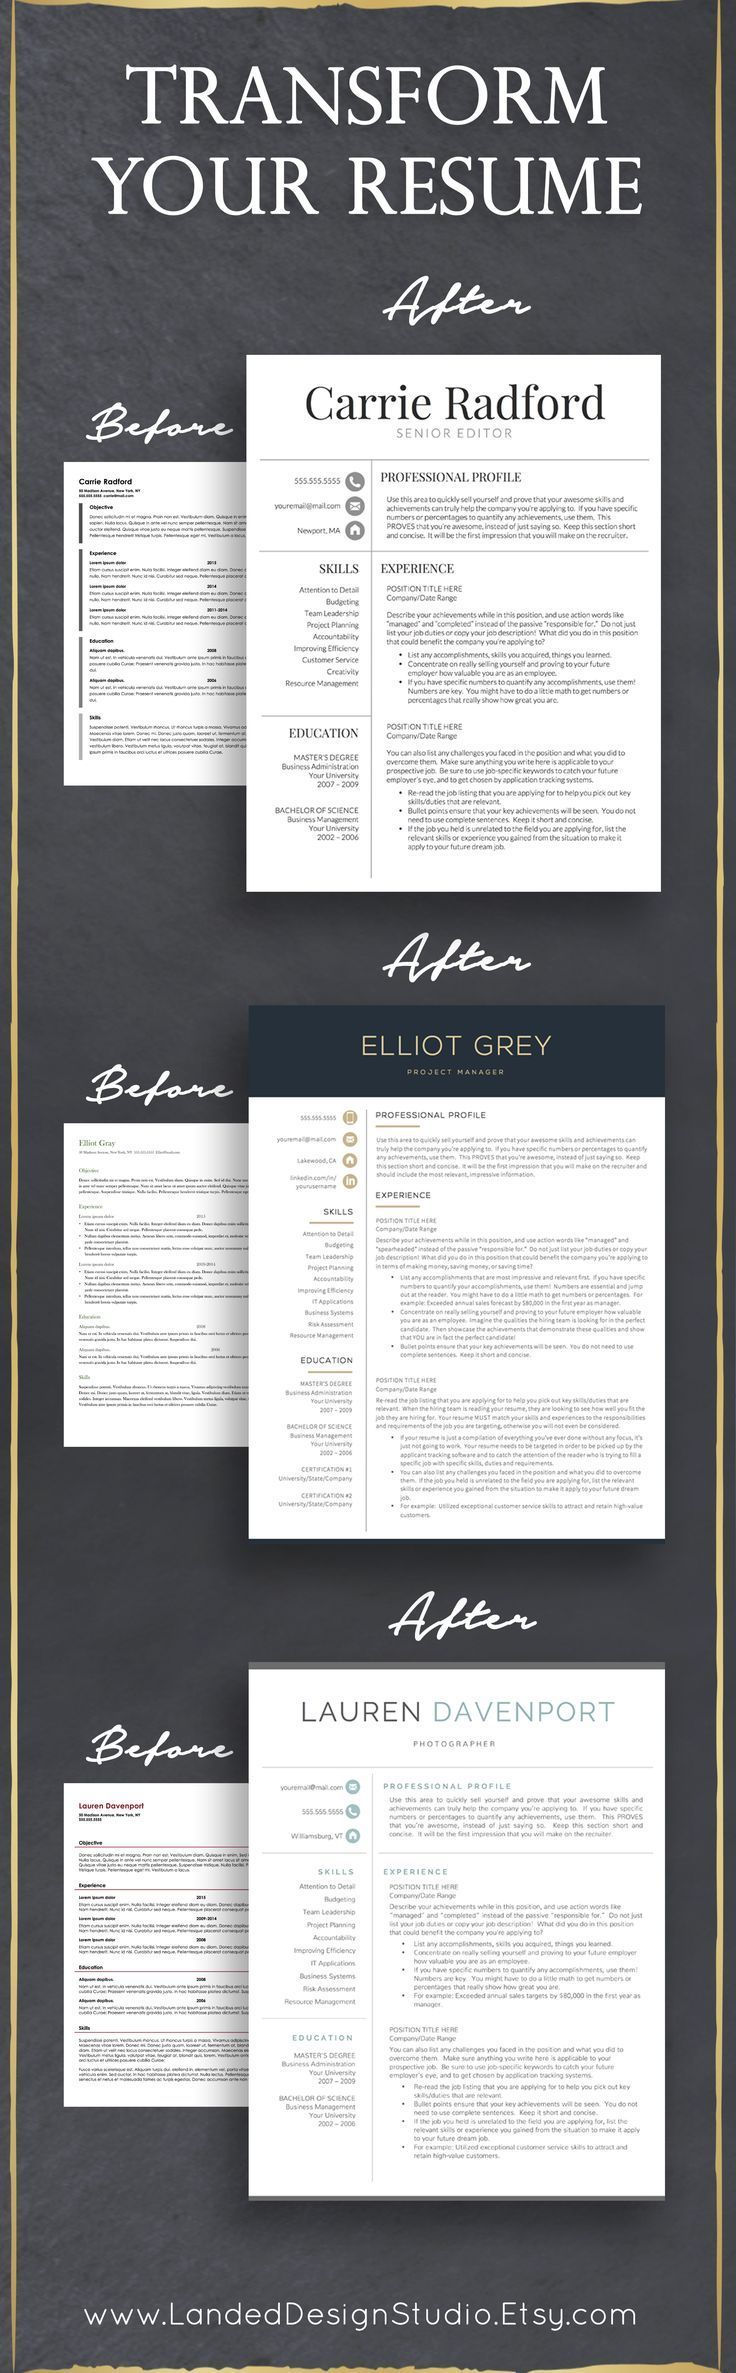 Completely transform your resume with a professional resume template ...